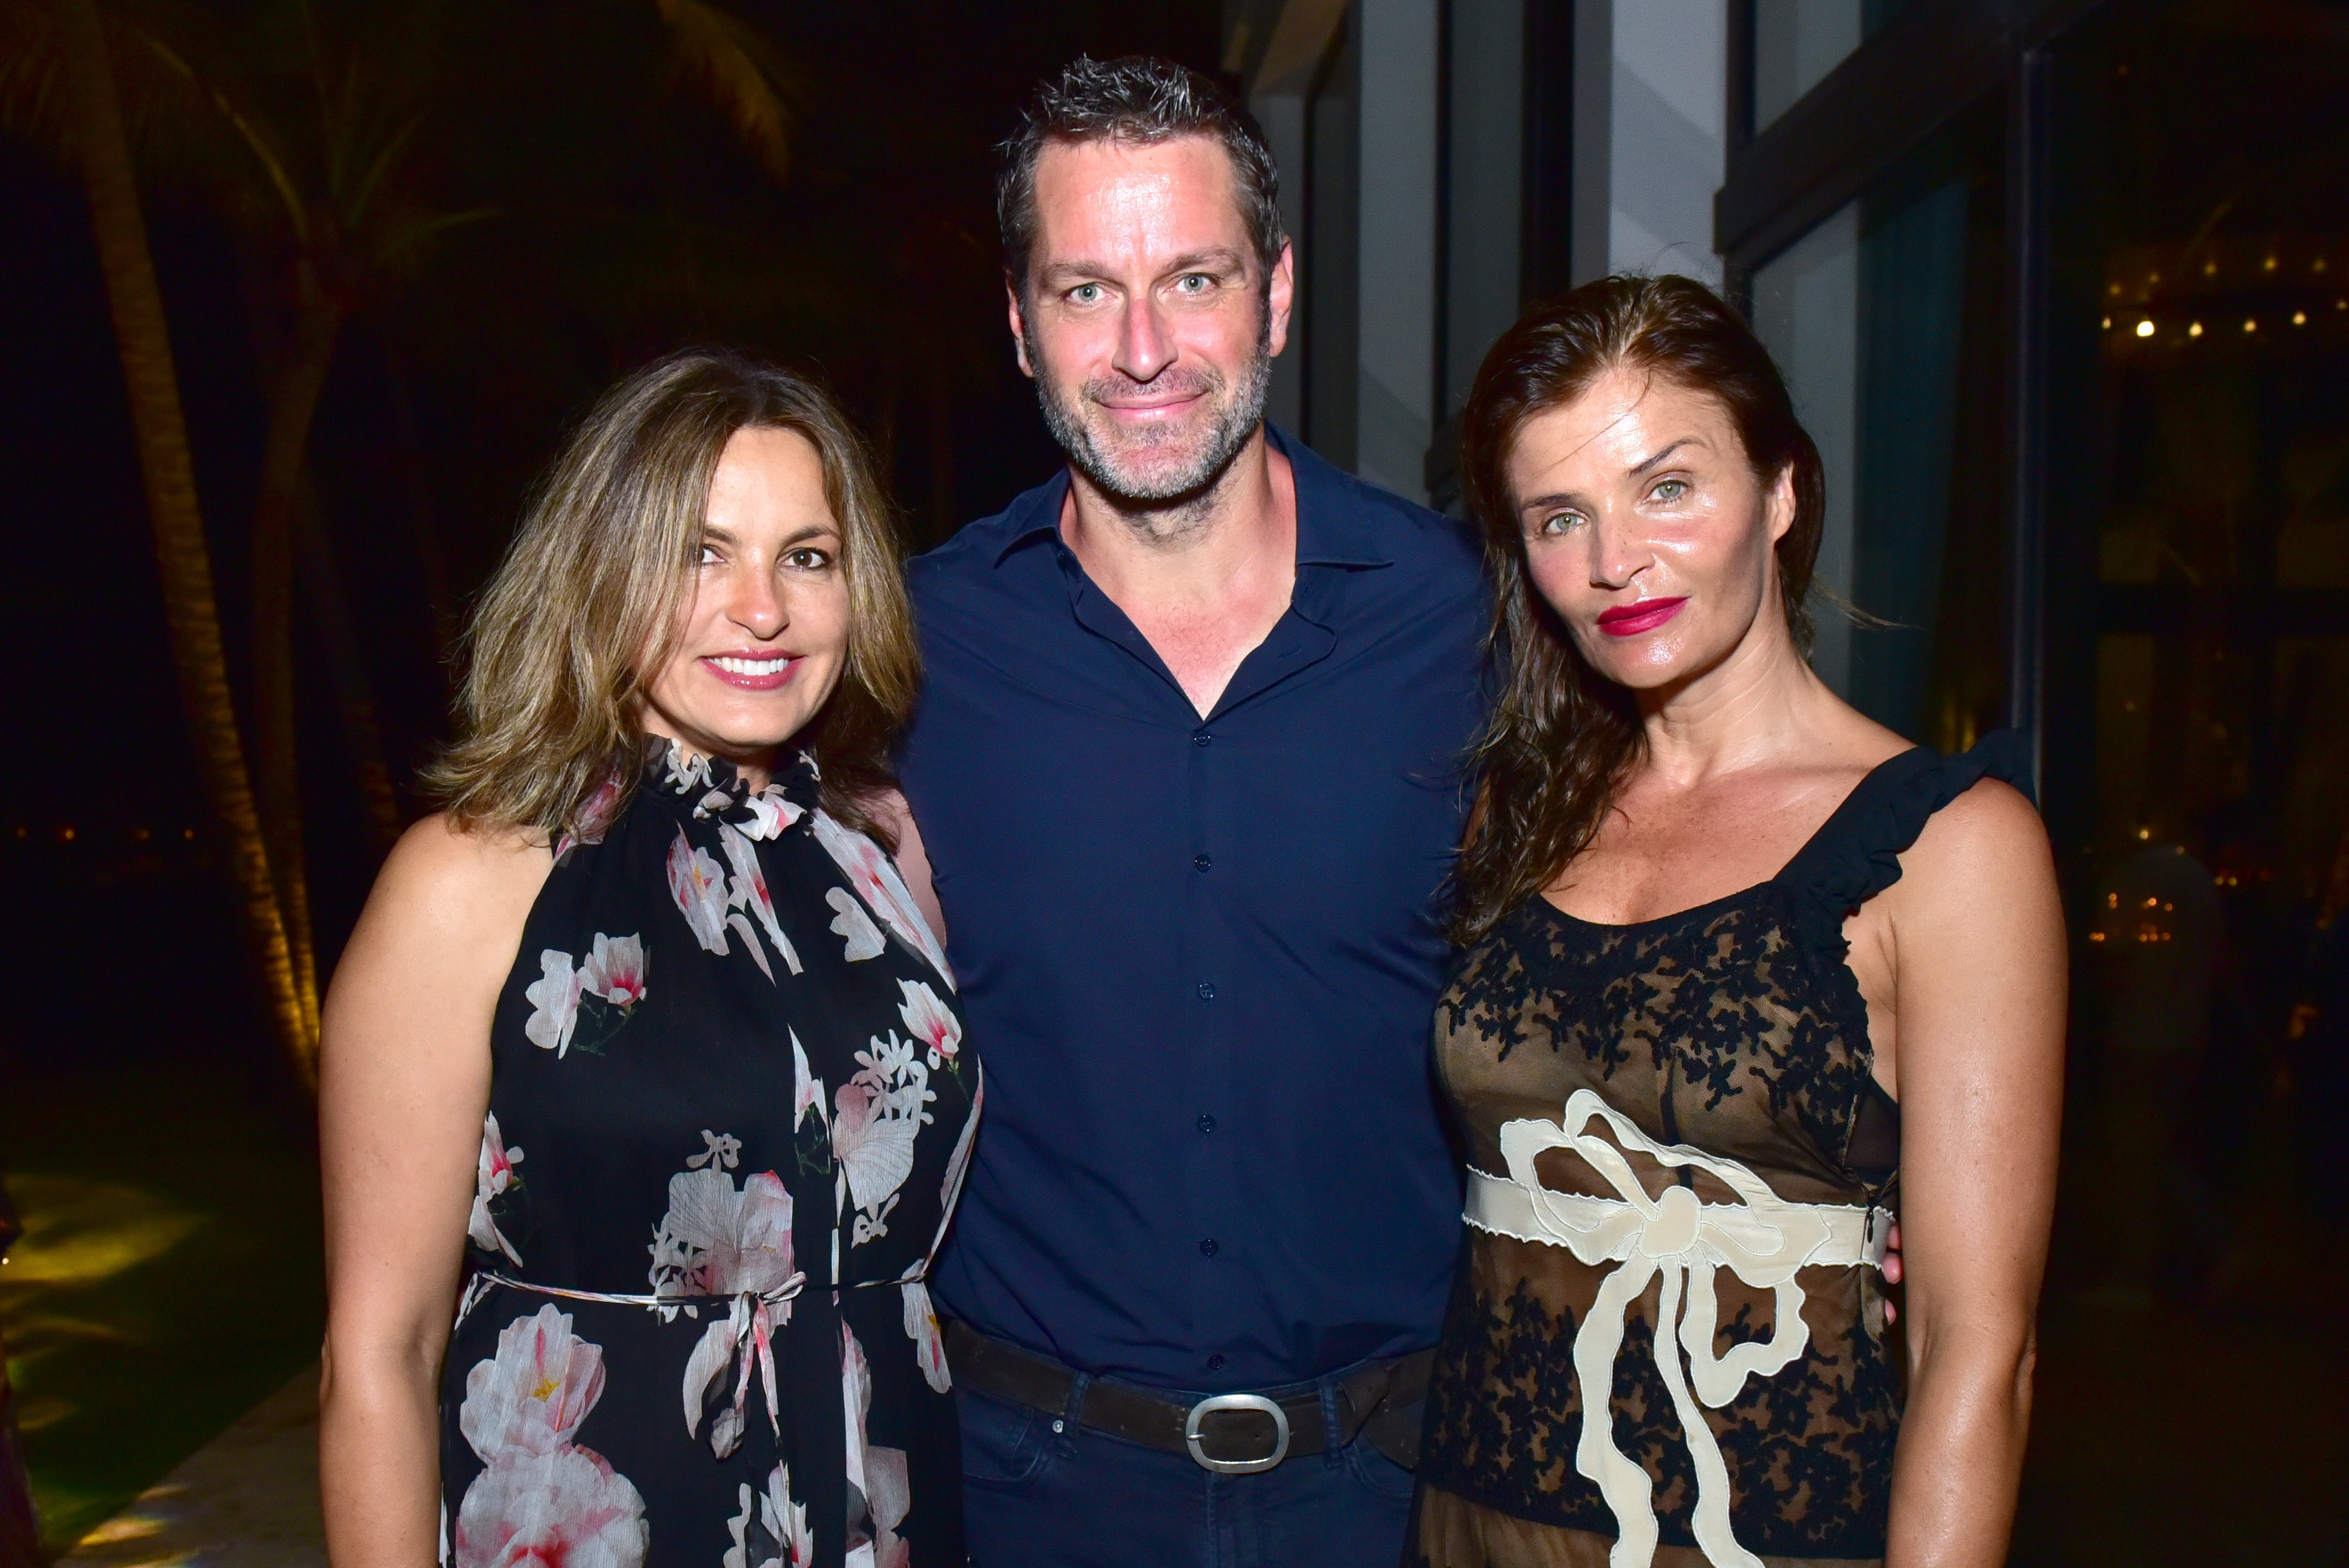 Mariska_Hargitay,_Peter_Hermann,_and_Helena_Christensen.jpg